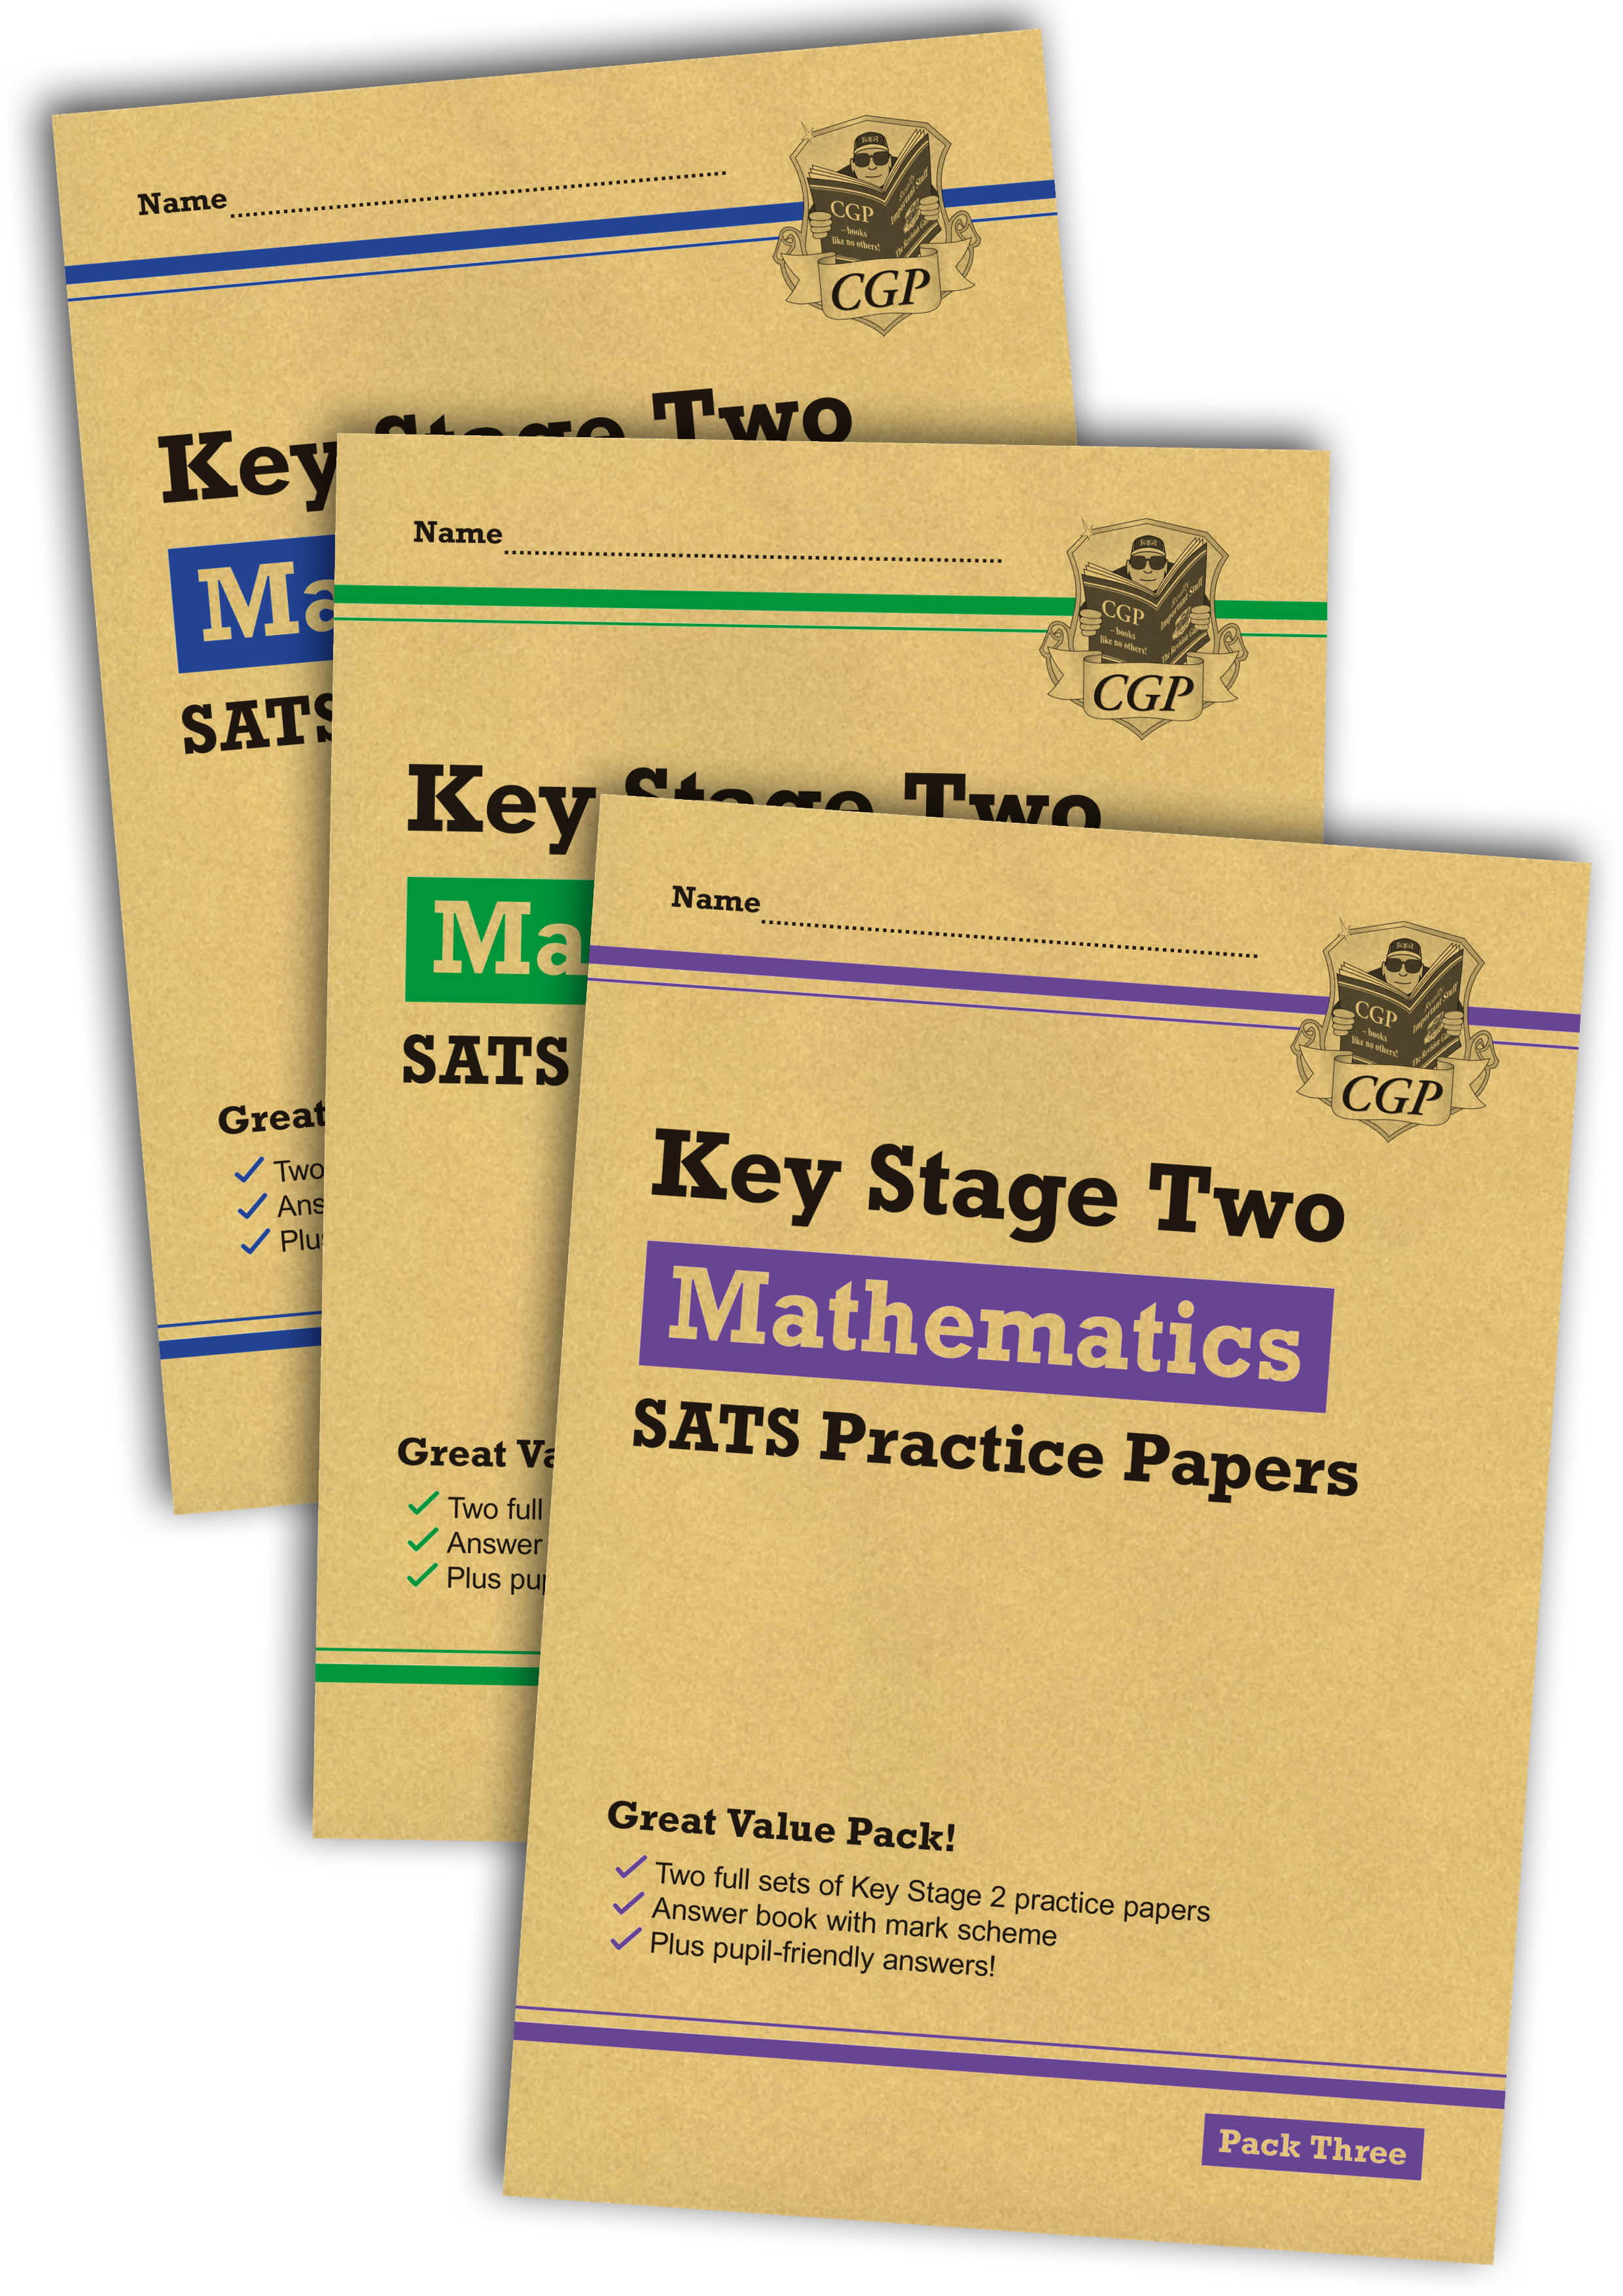 MHB3P23 - New KS2 Maths SATS Practice Paper Bundle: Packs 1, 2 & 3 (for the 2019 tests)